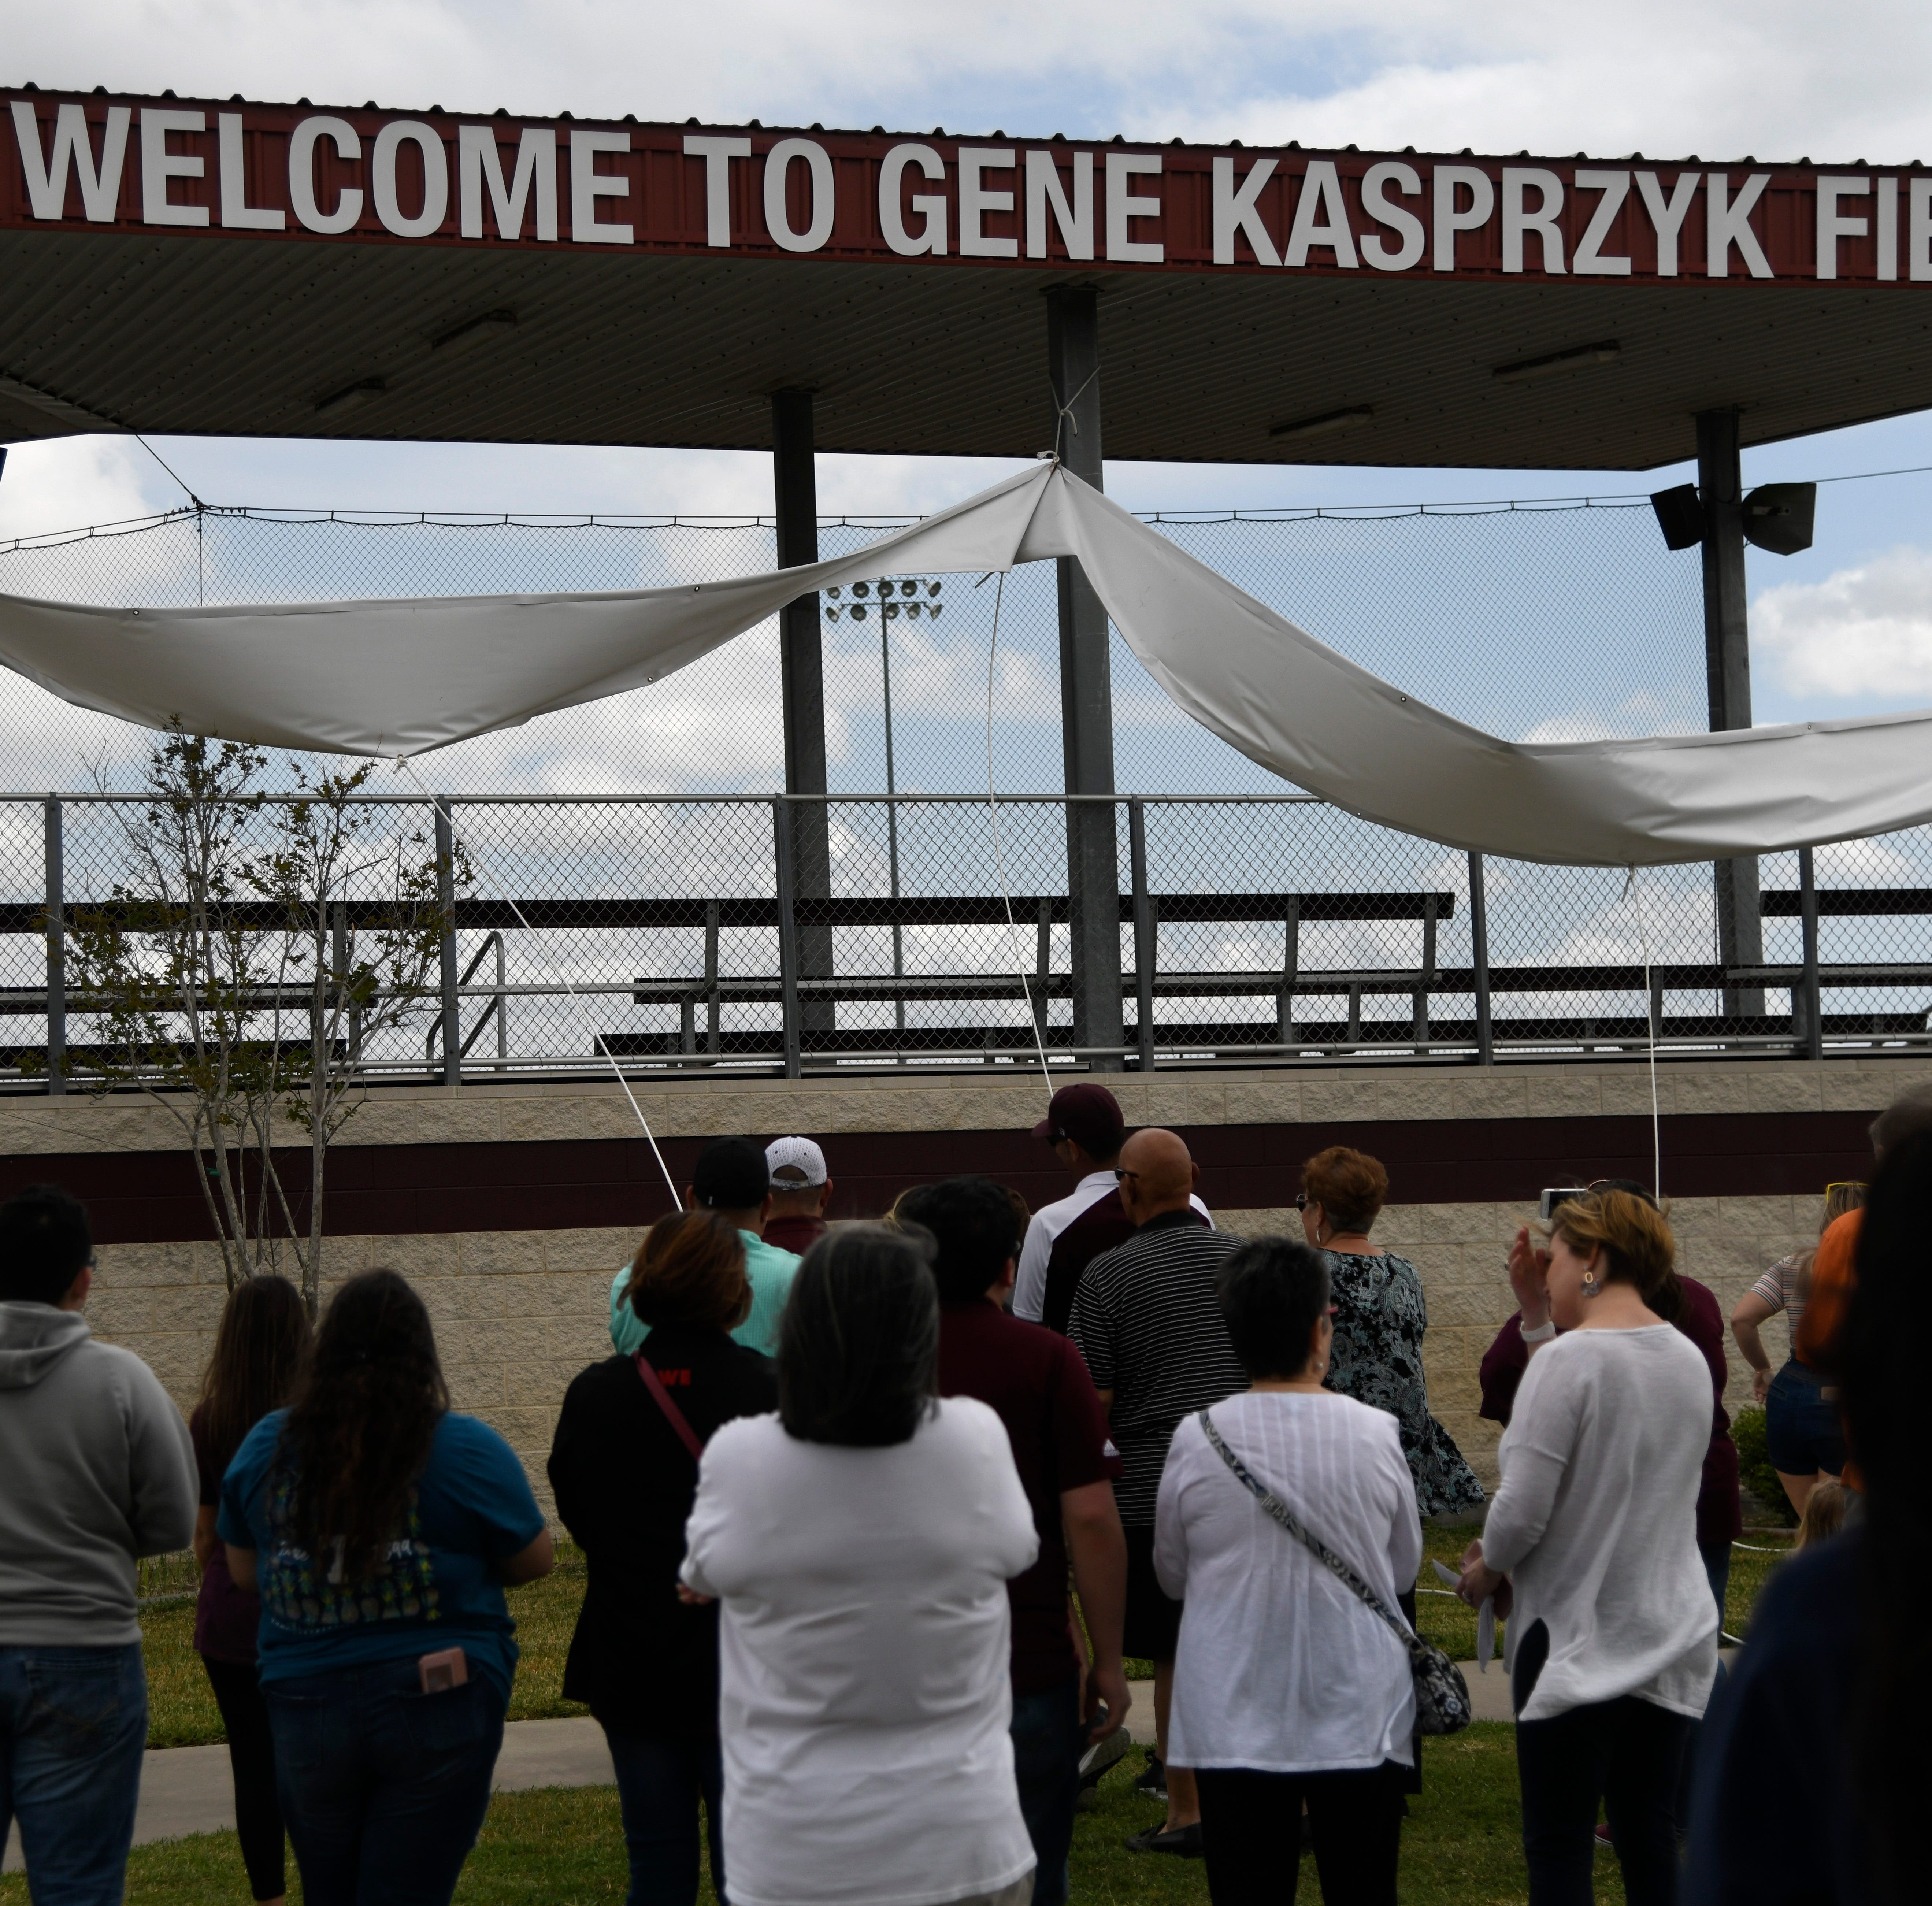 Sinton dedicates baseball field to longtime retired coach Gene Kasprzyk